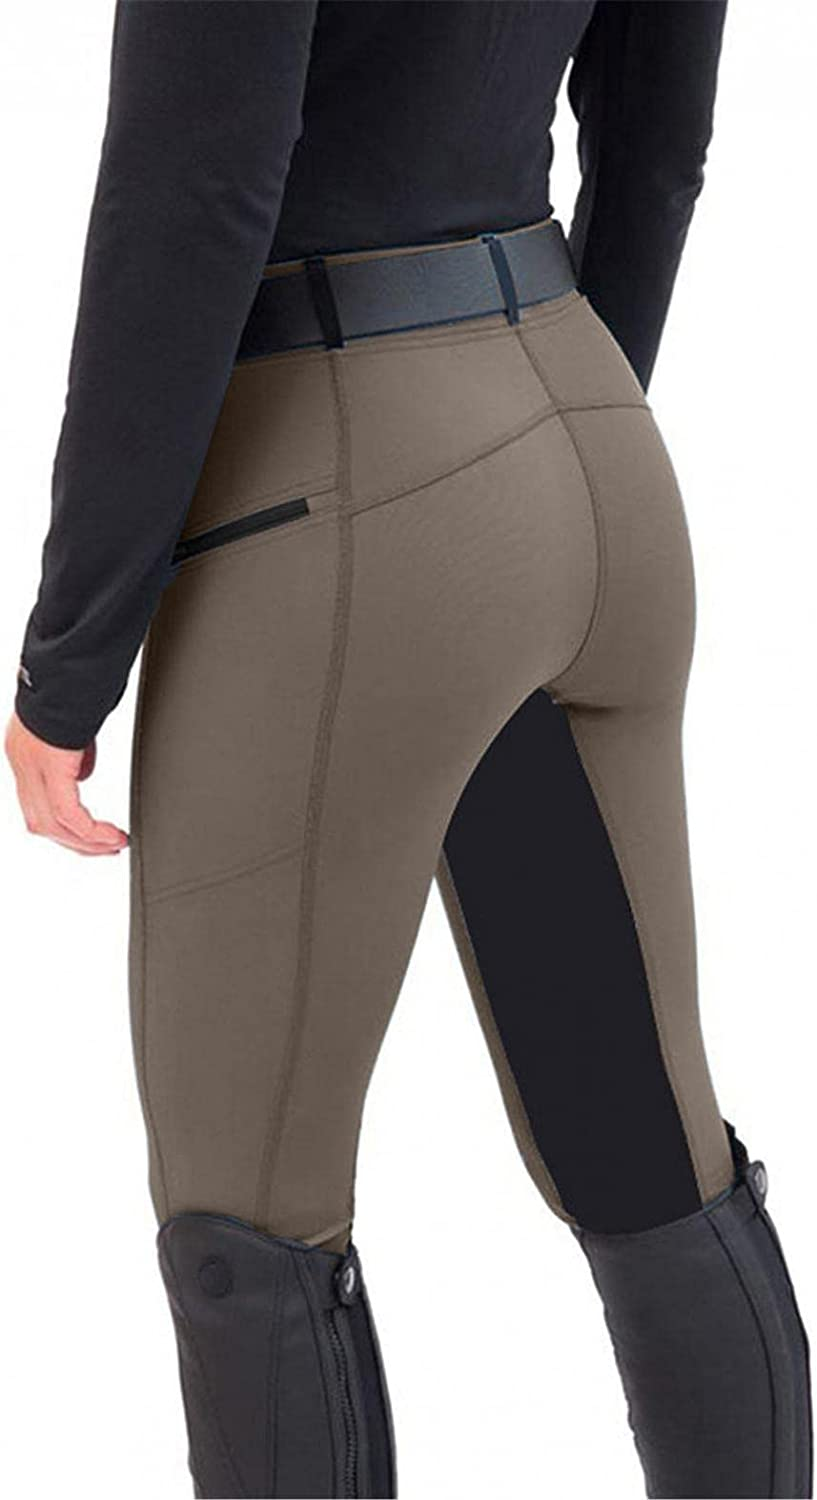 Women's Horse Riding Pants Breeches Exercise High Waist Slim Sports Patchwork Equestrian Trousers Yoga Leggings Tights